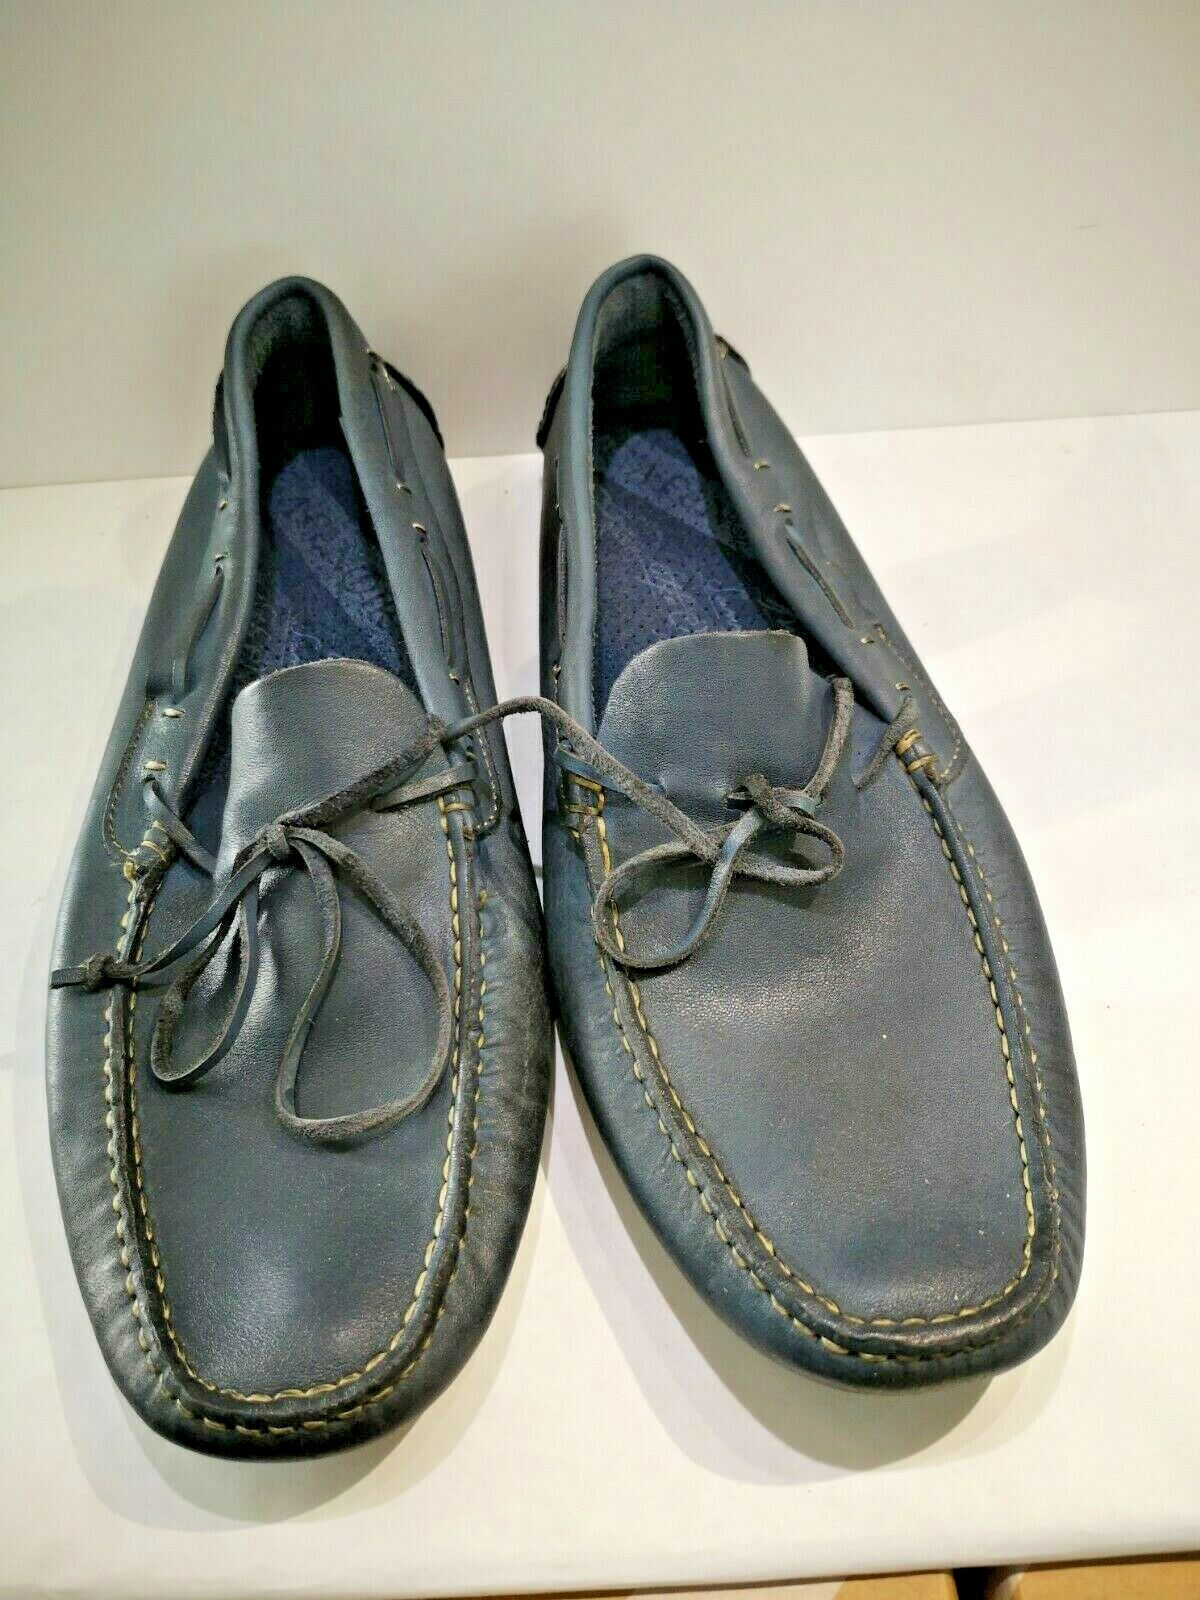 Black Leather Loafers Cafe Navy New Value 99 and number 44